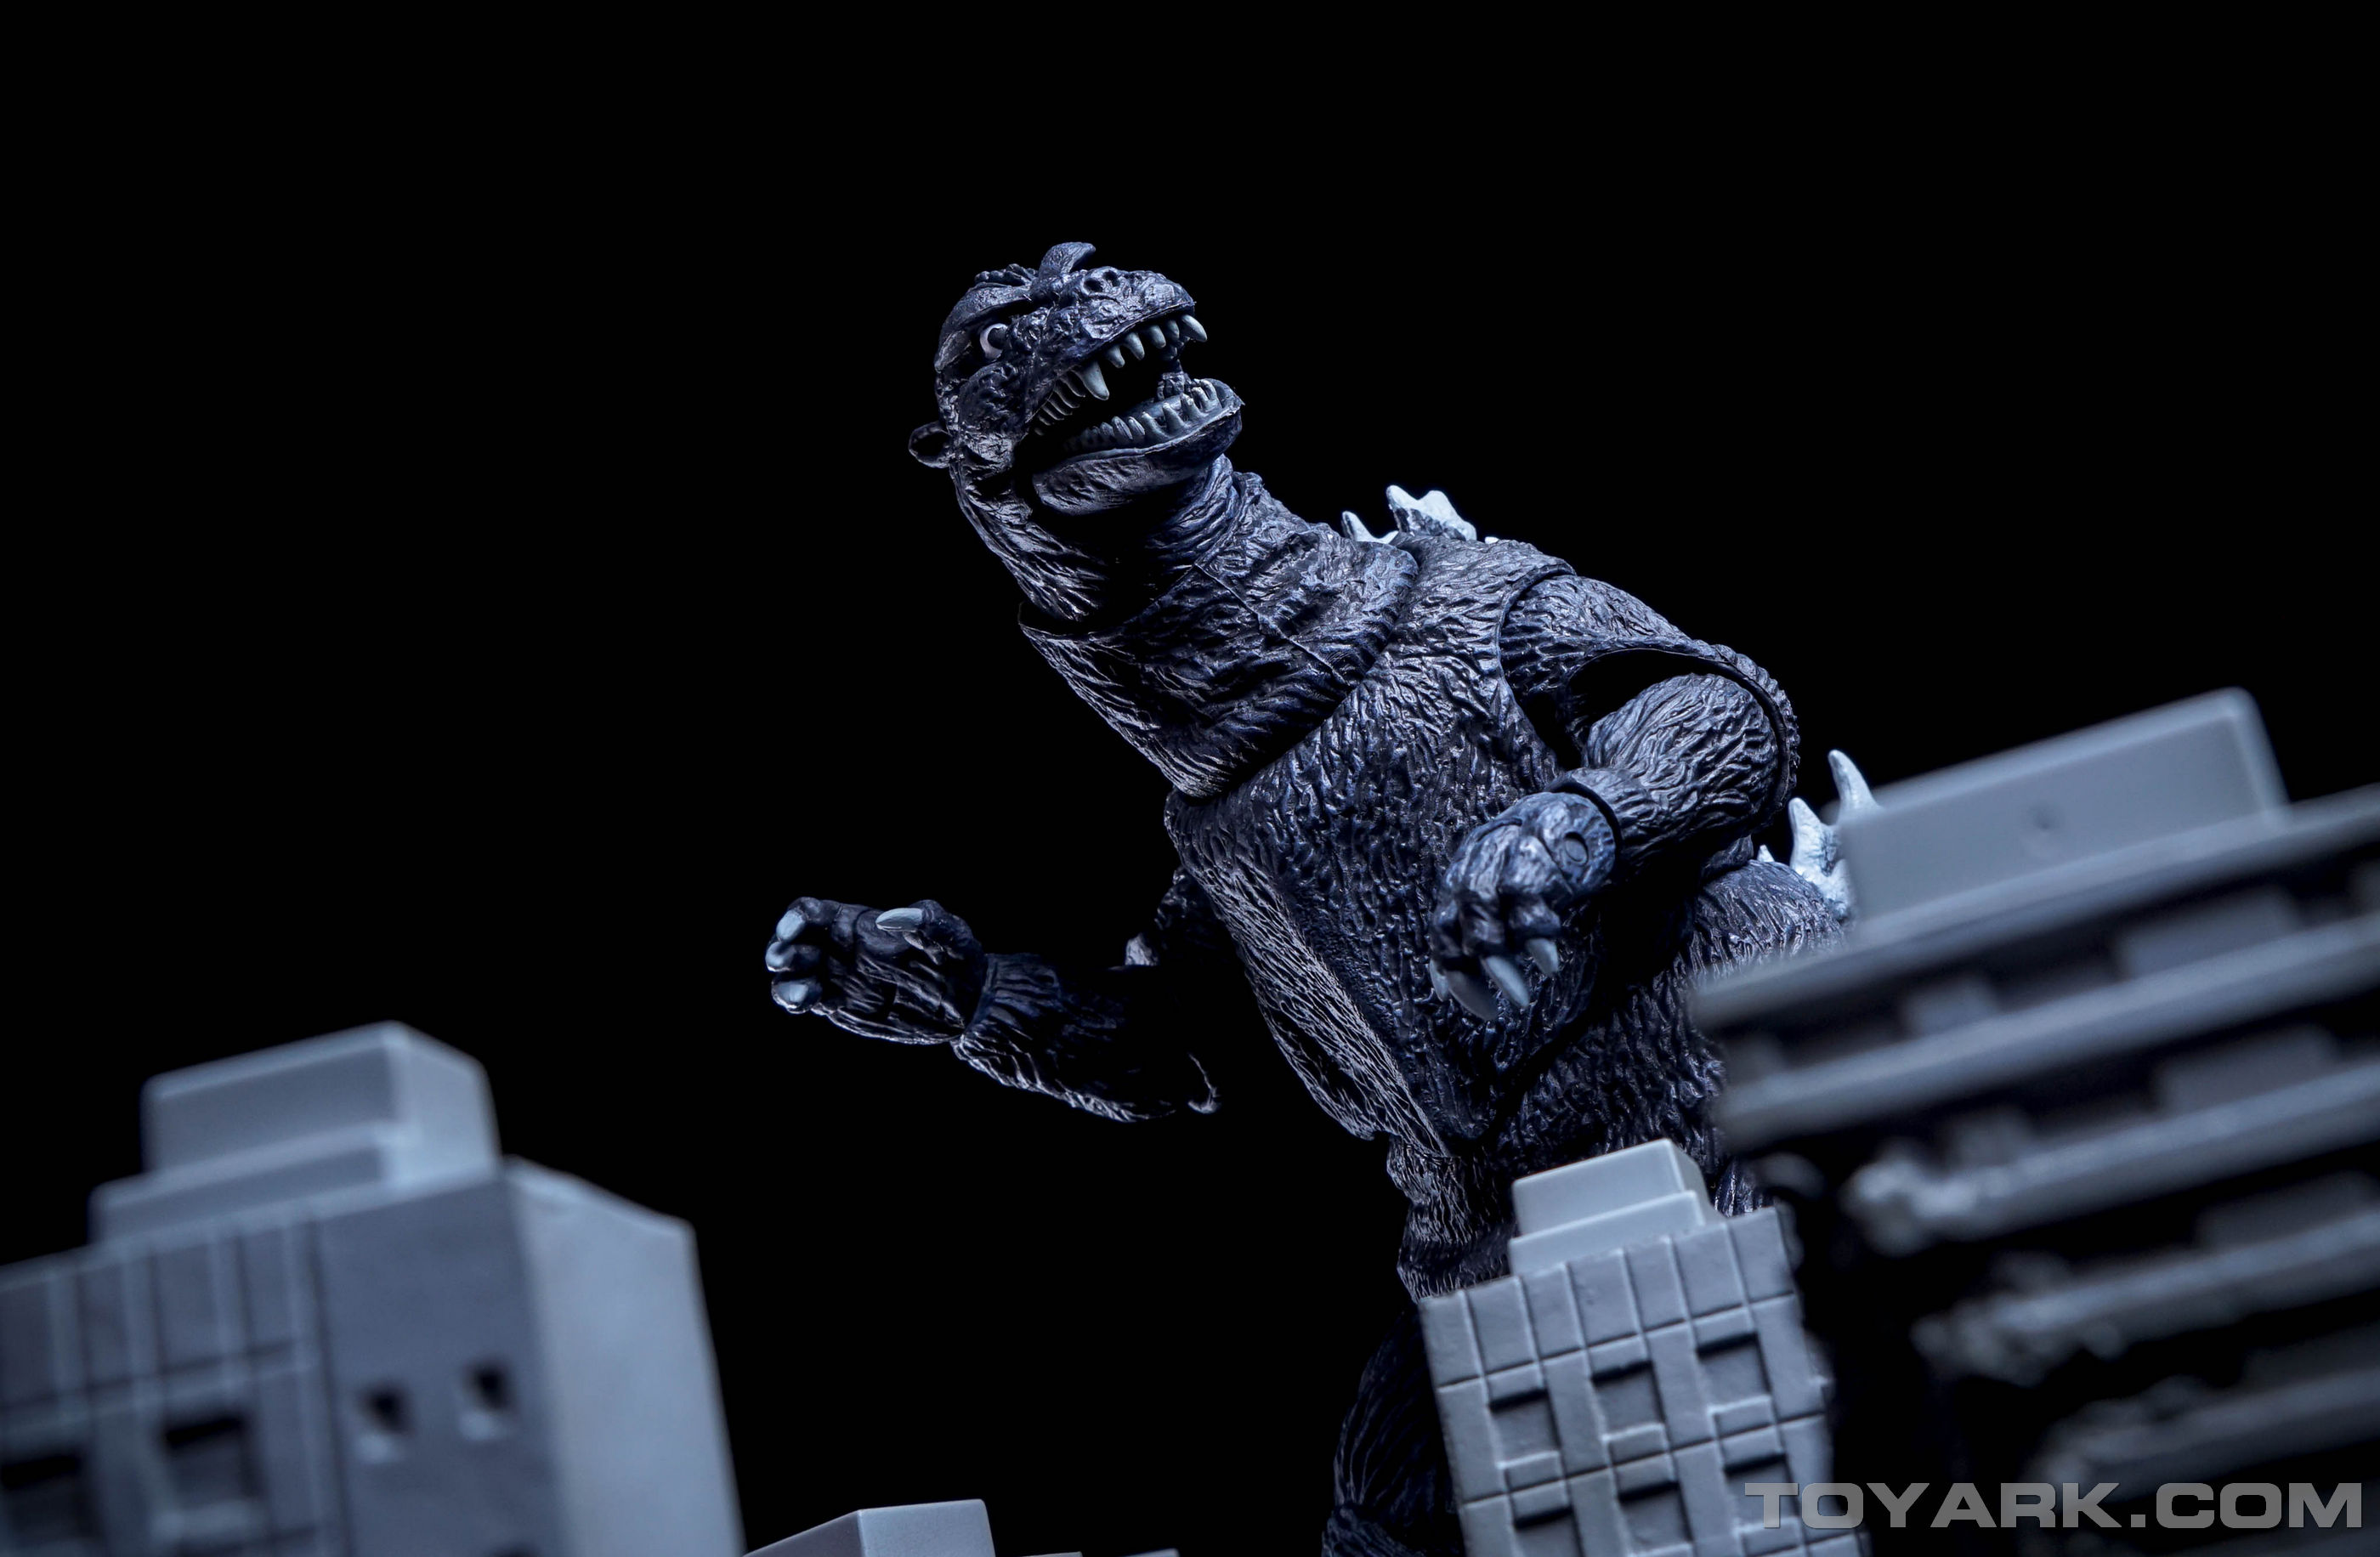 http://news.toyark.com/wp-content/uploads/sites/4/2015/09/NECA-1954-Godzilla-047.jpg